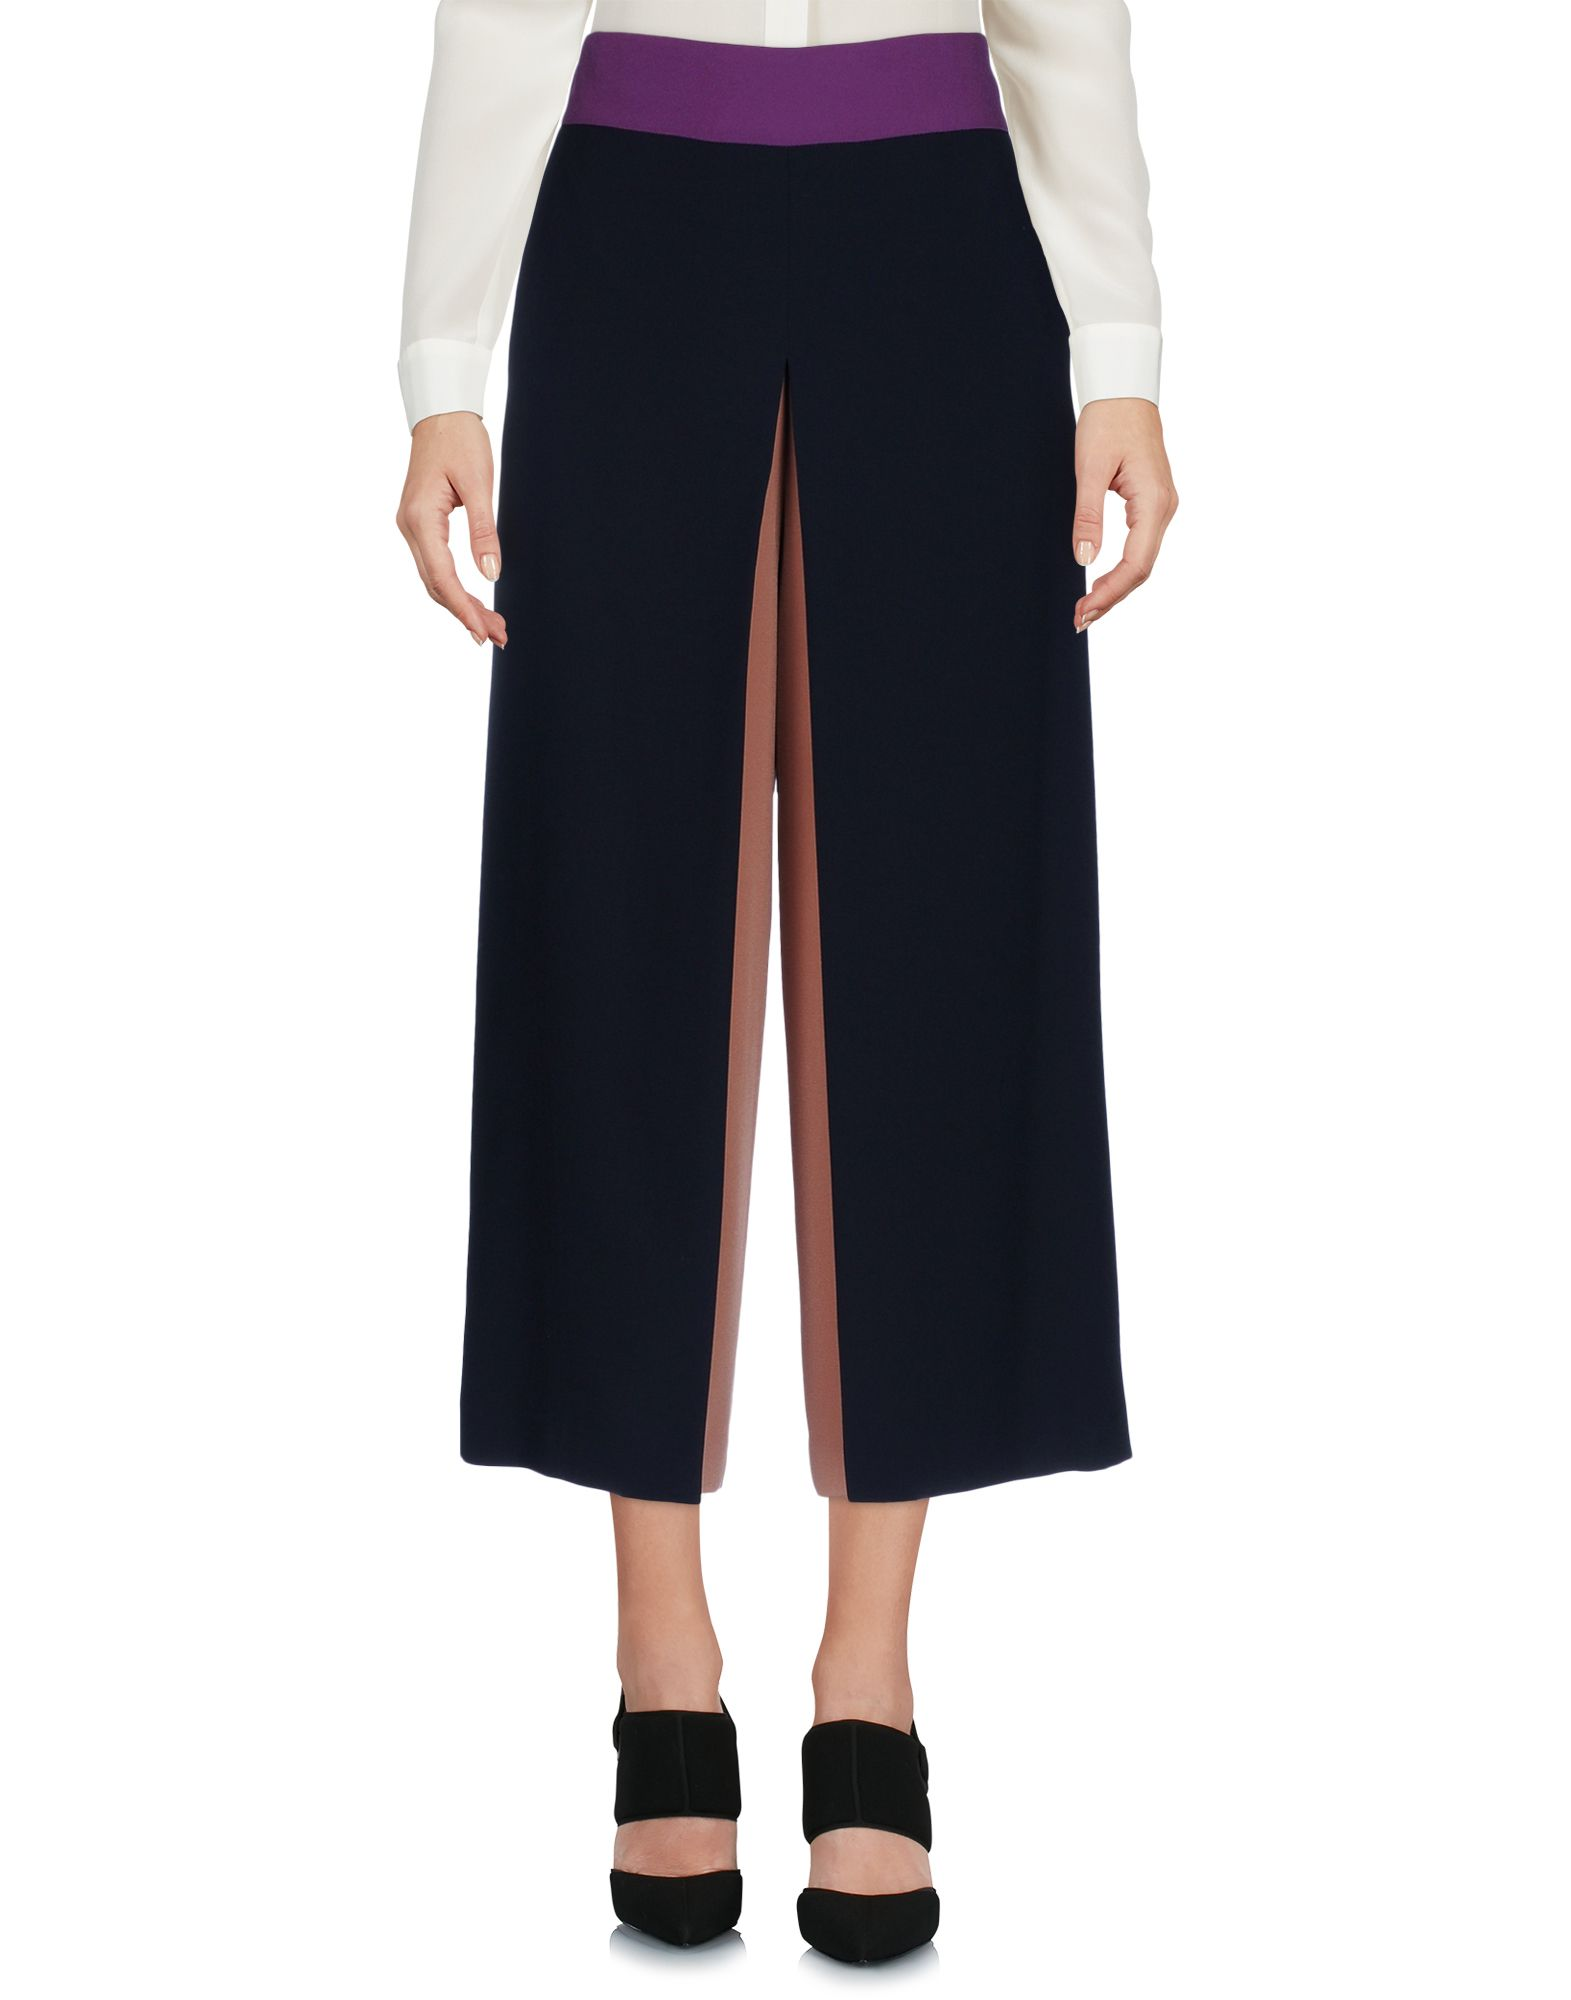 LORENZA PAMBIANCO Cropped Pants & Culottes in Dark Blue